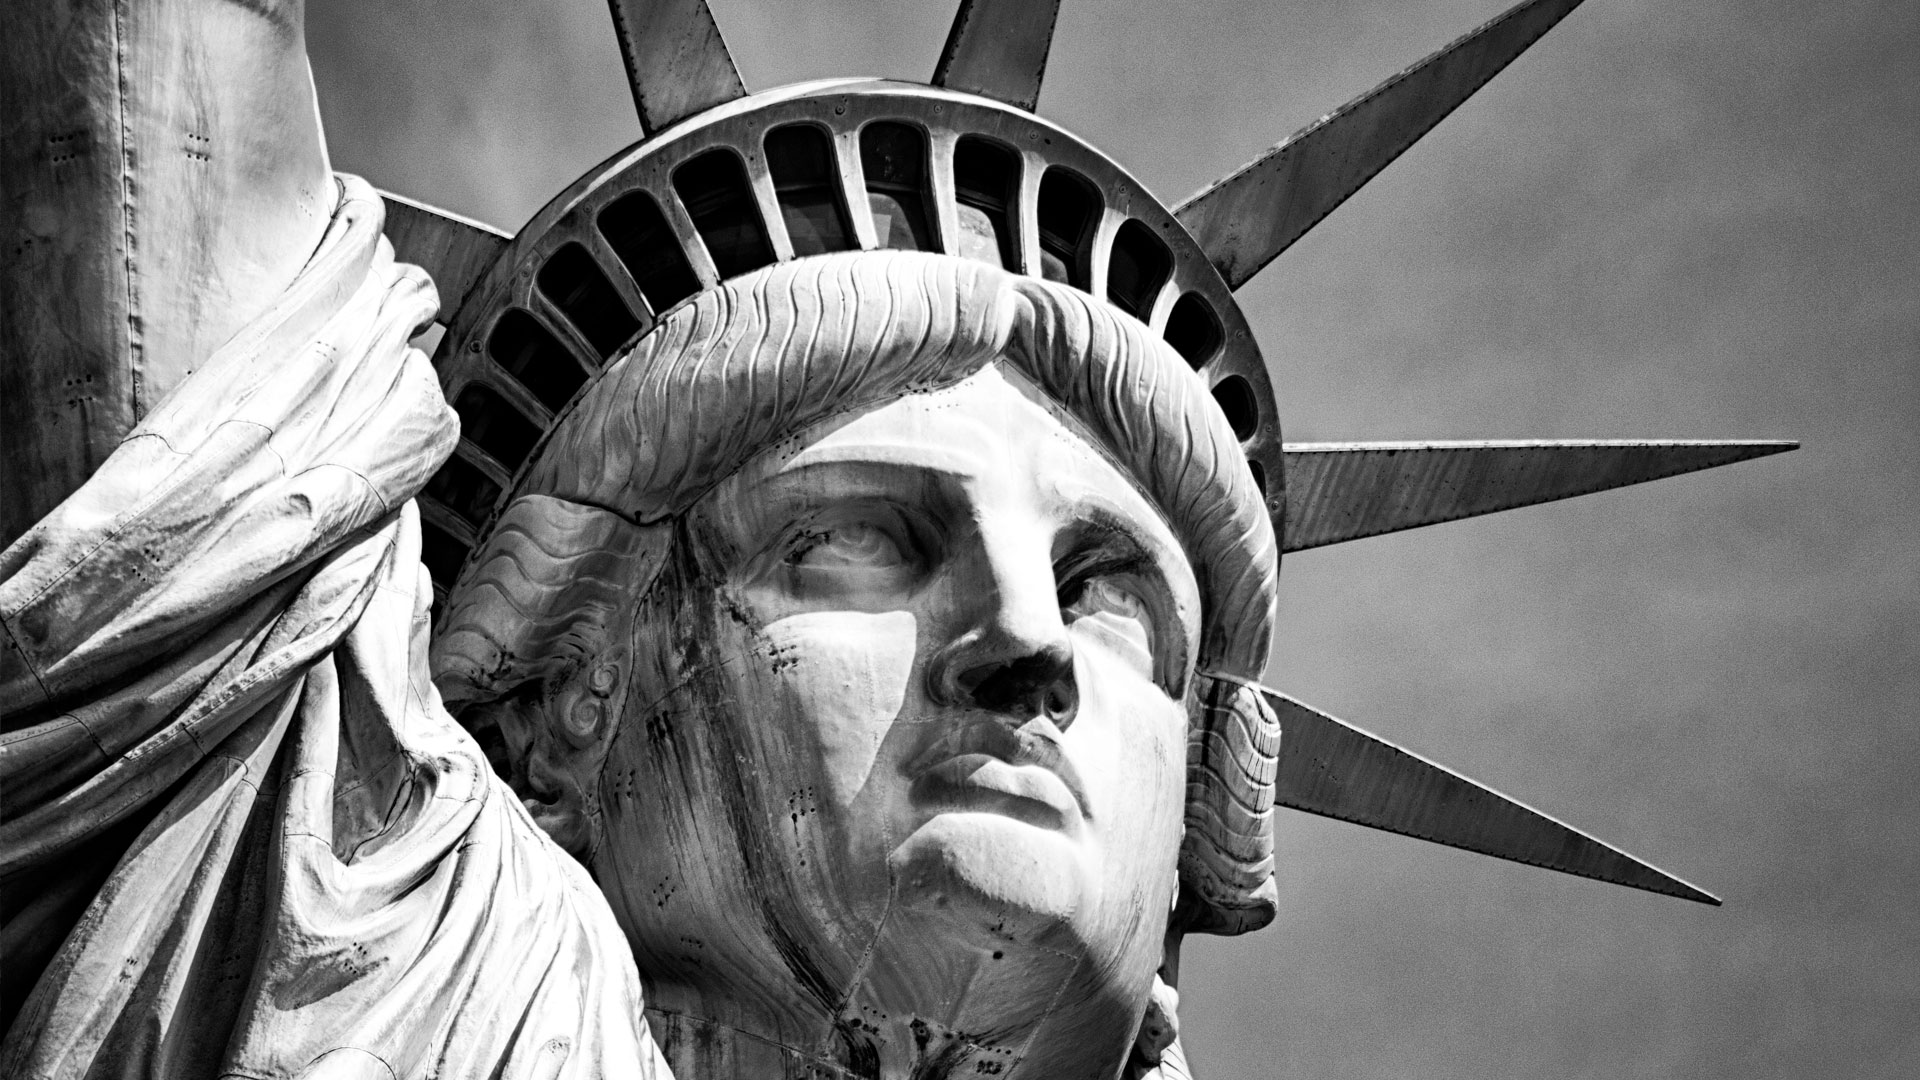 Waterstone Statue of Liberty